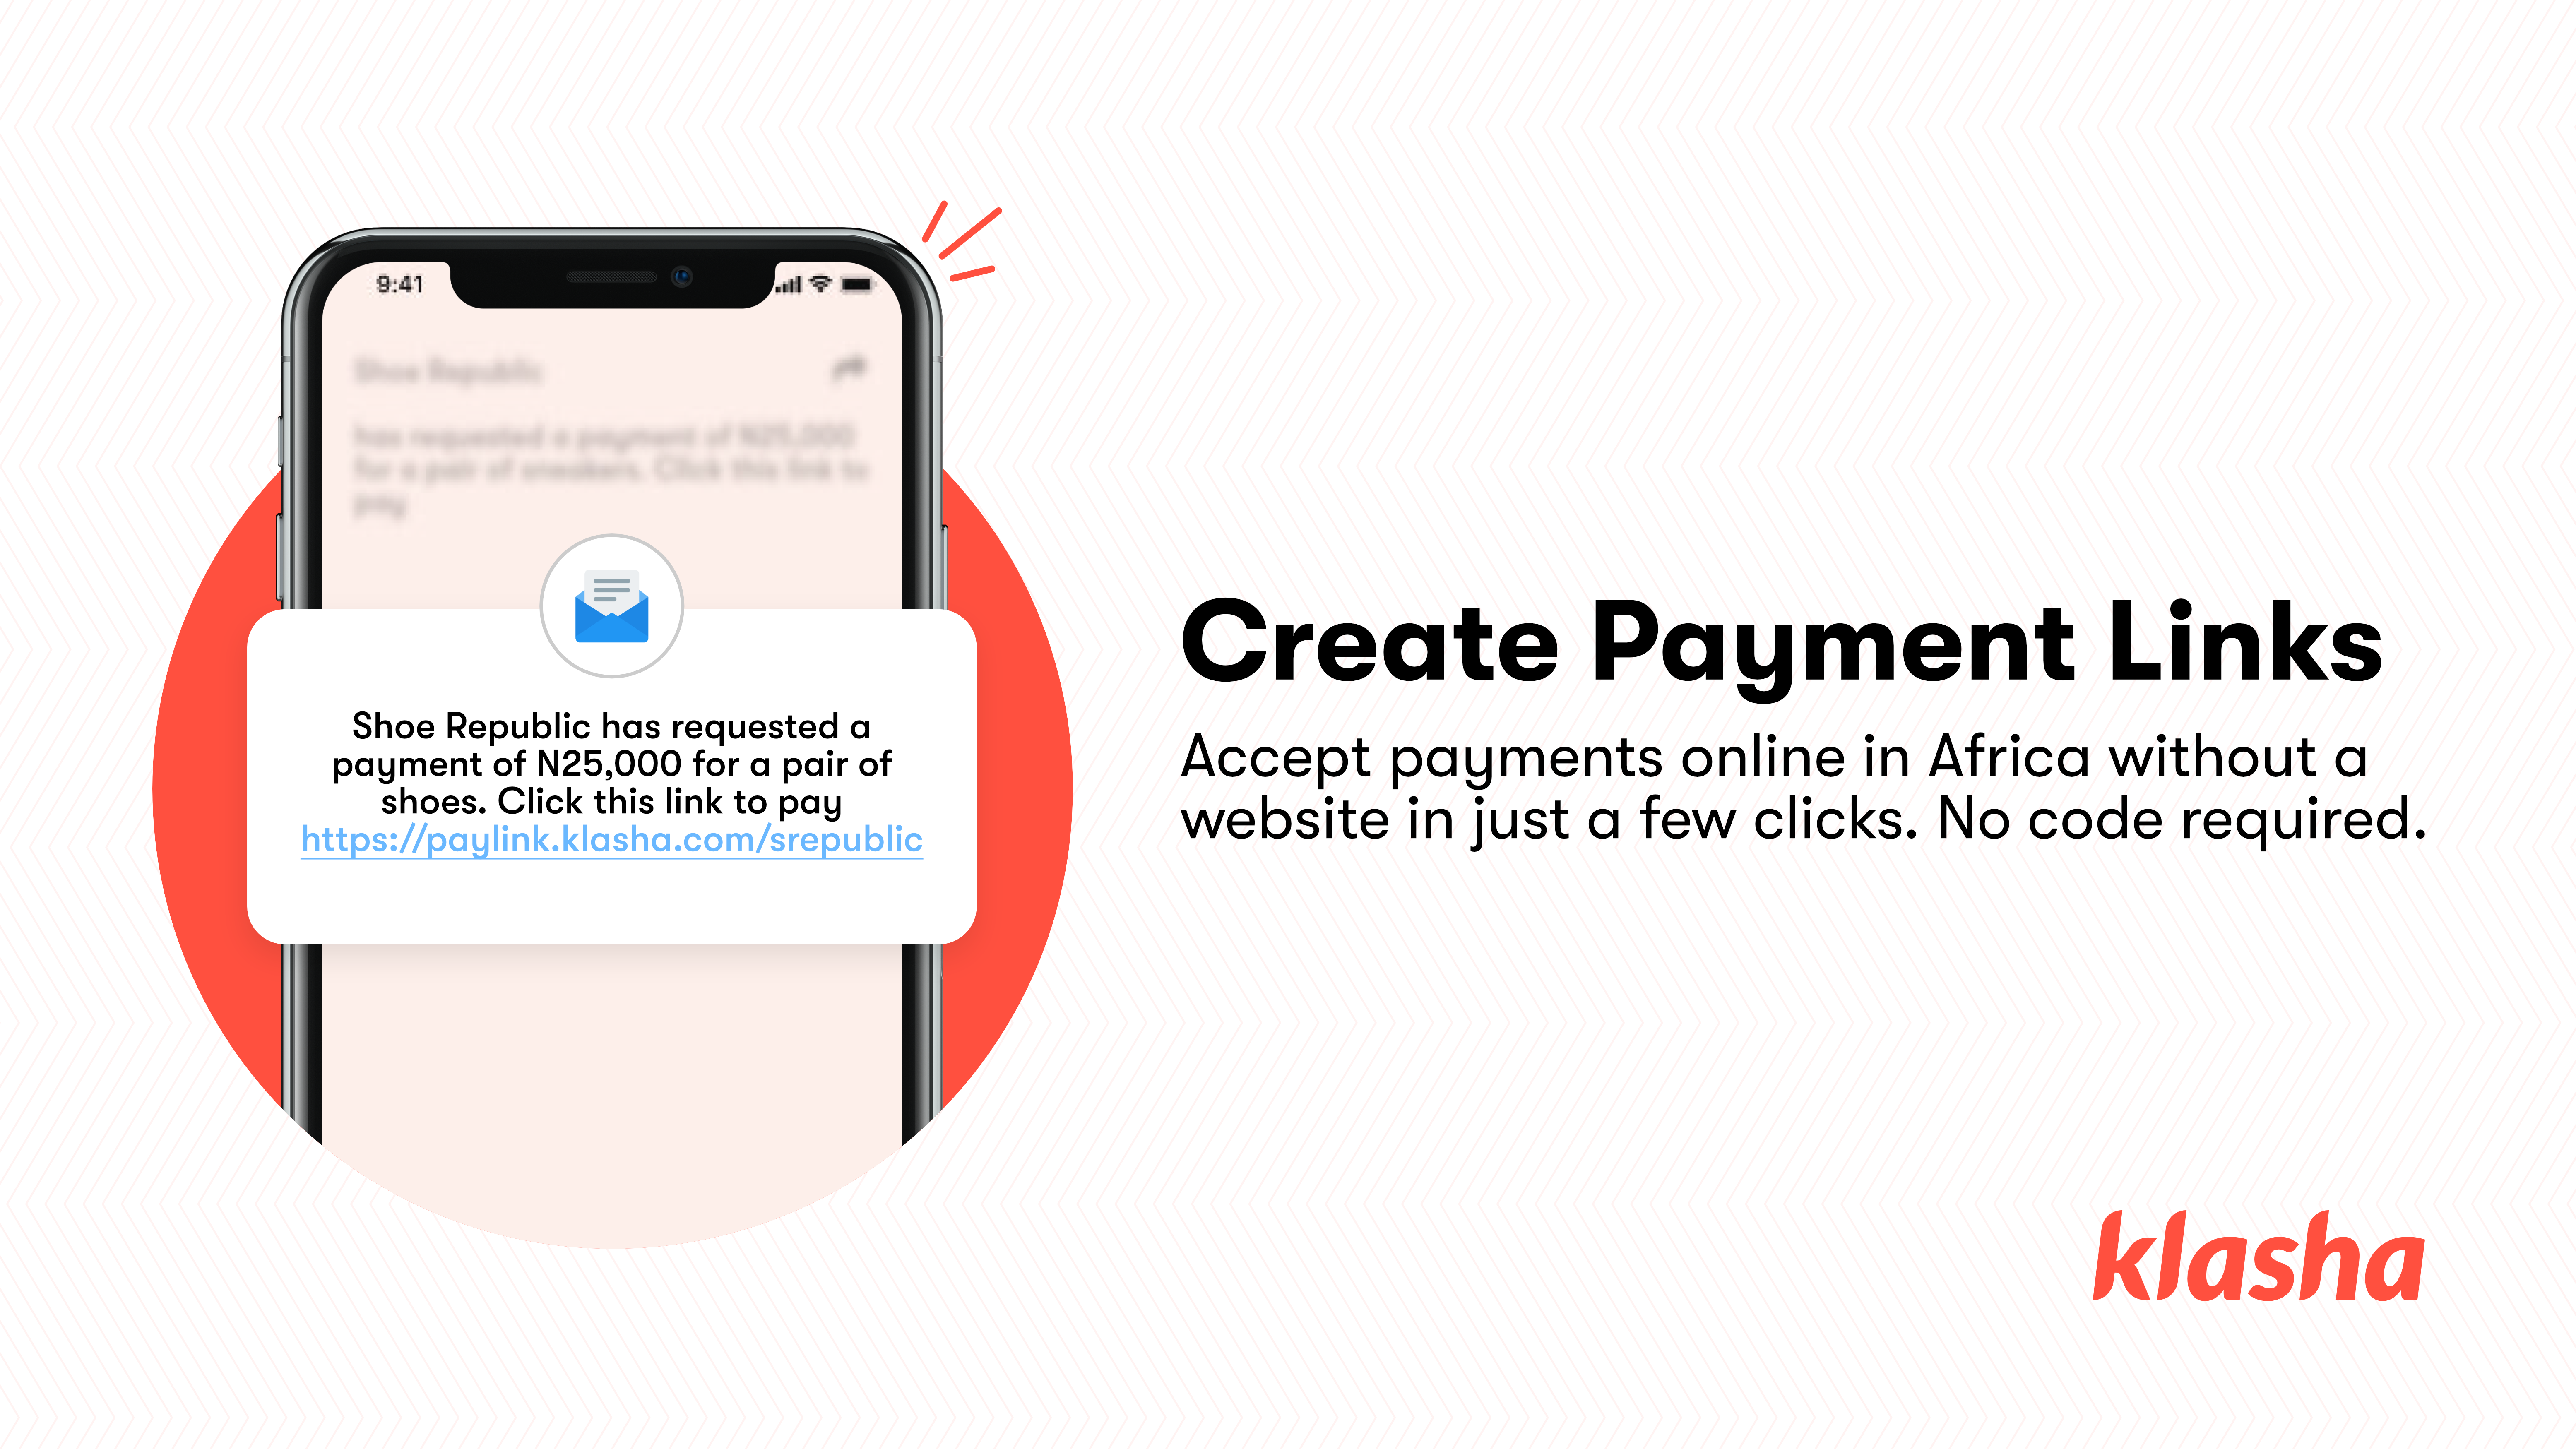 Klasha launches Payment Links - a no-code option to accept payments from Africa